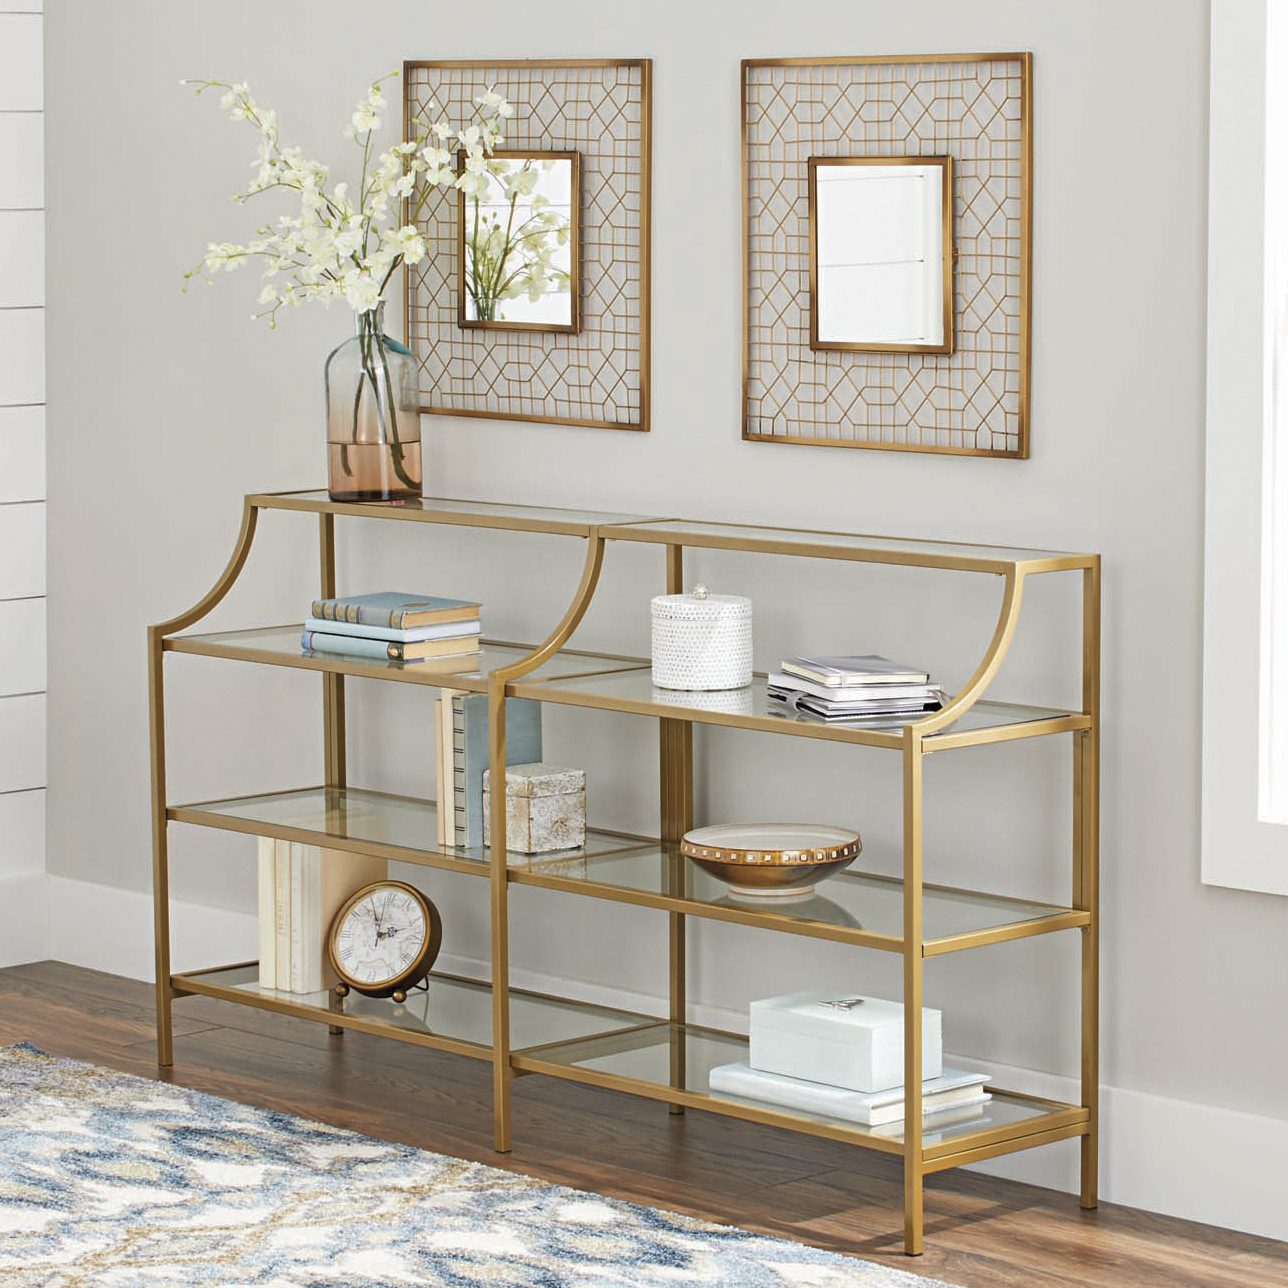 Better Homes Gardens Nola Console Table, Gold Finish 689413782828 | Ebay Within Ventana Display Console Tables (View 19 of 20)